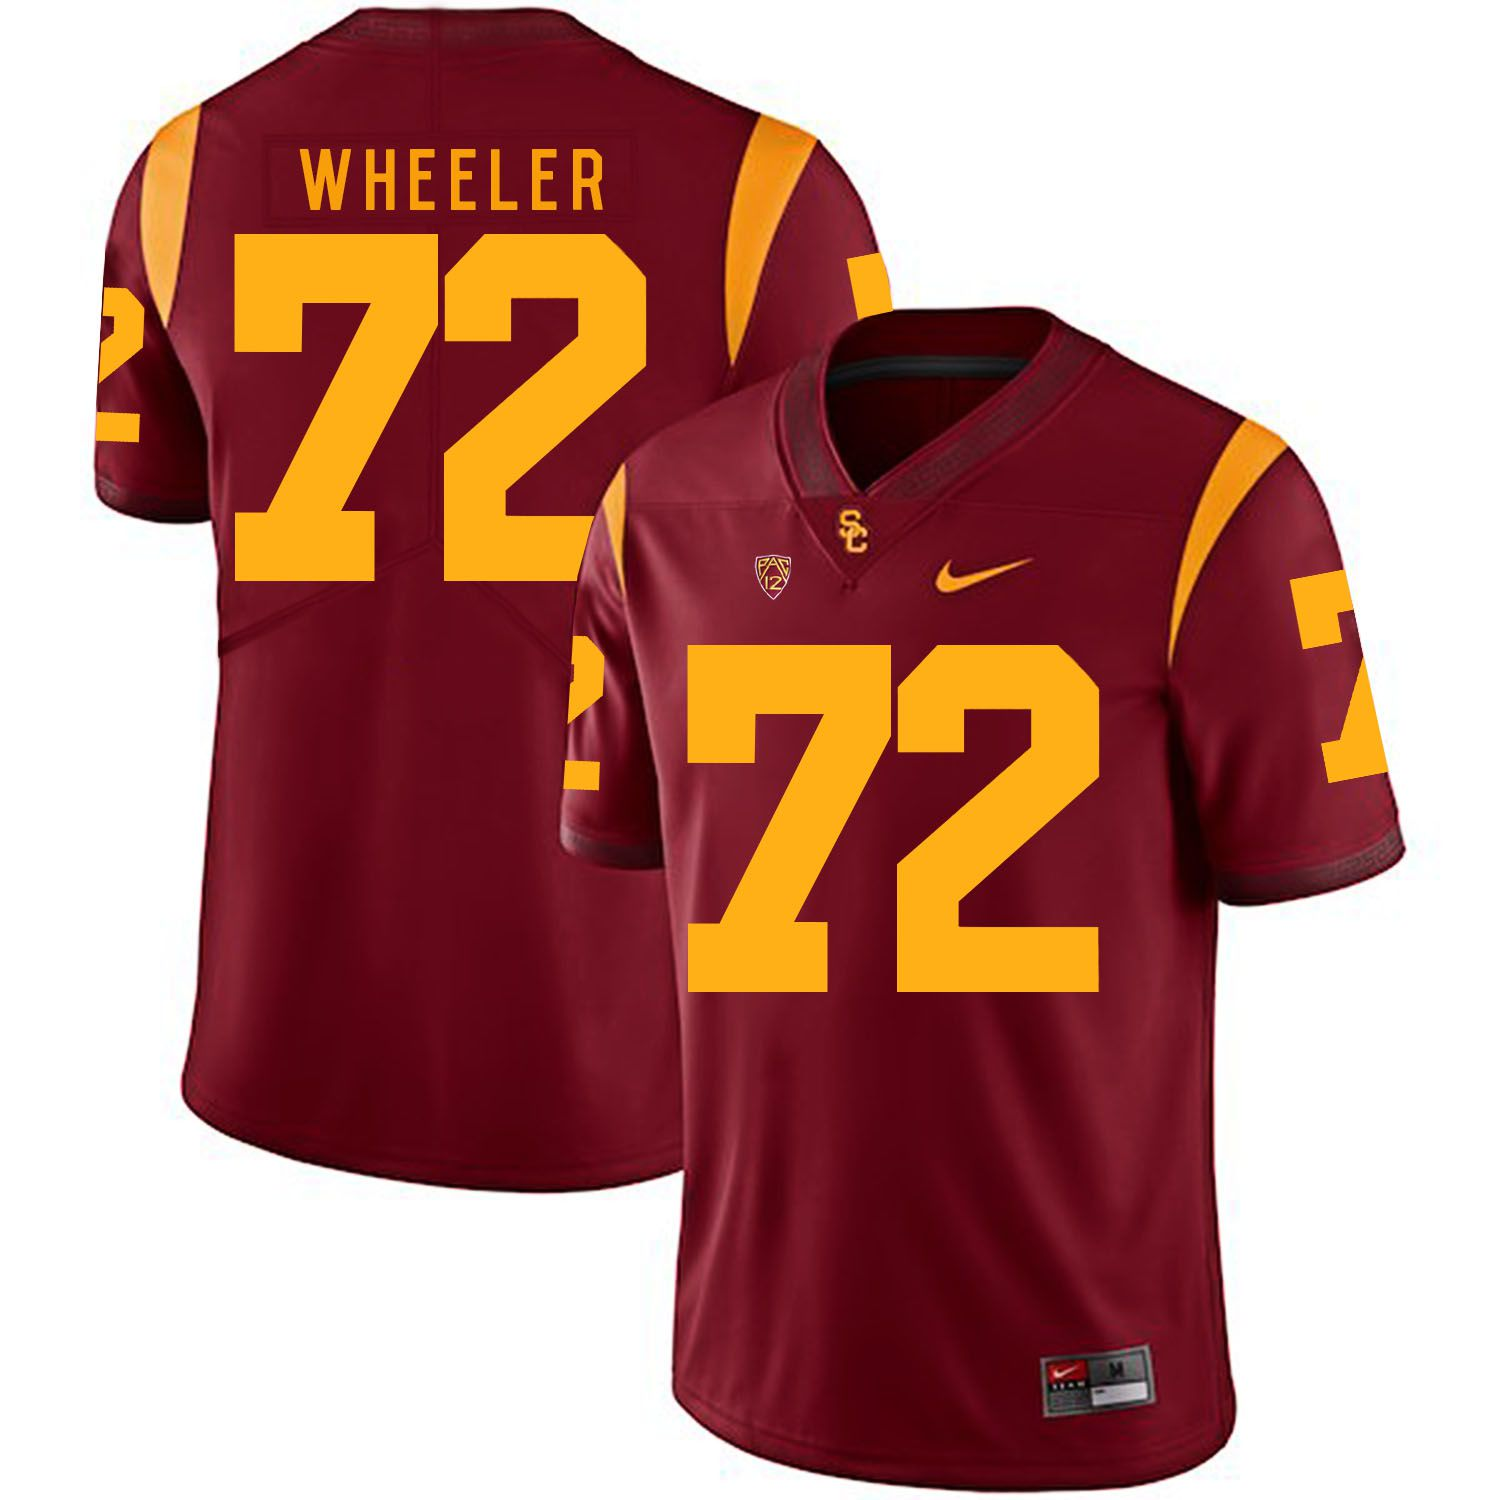 Men USC Trojans 72 Wheeler Red Customized NCAA Jerseys